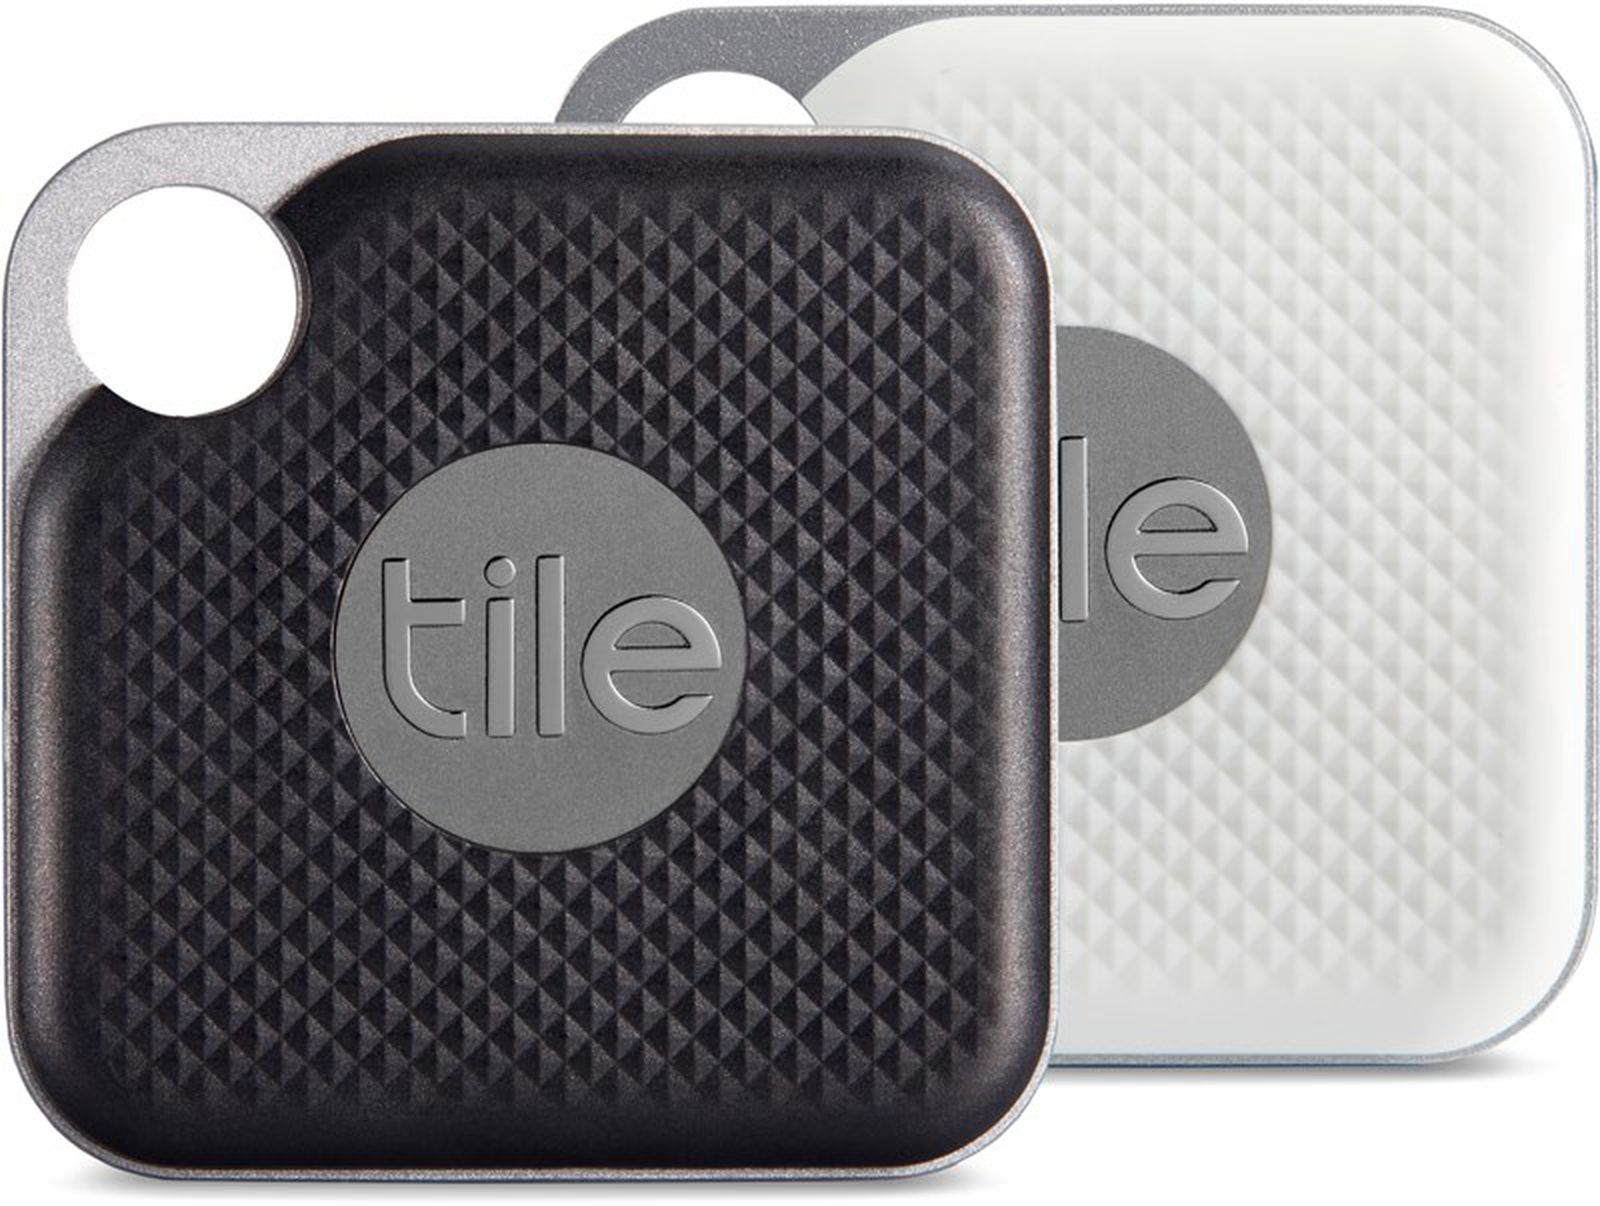 tile launches upgraded tile mate and